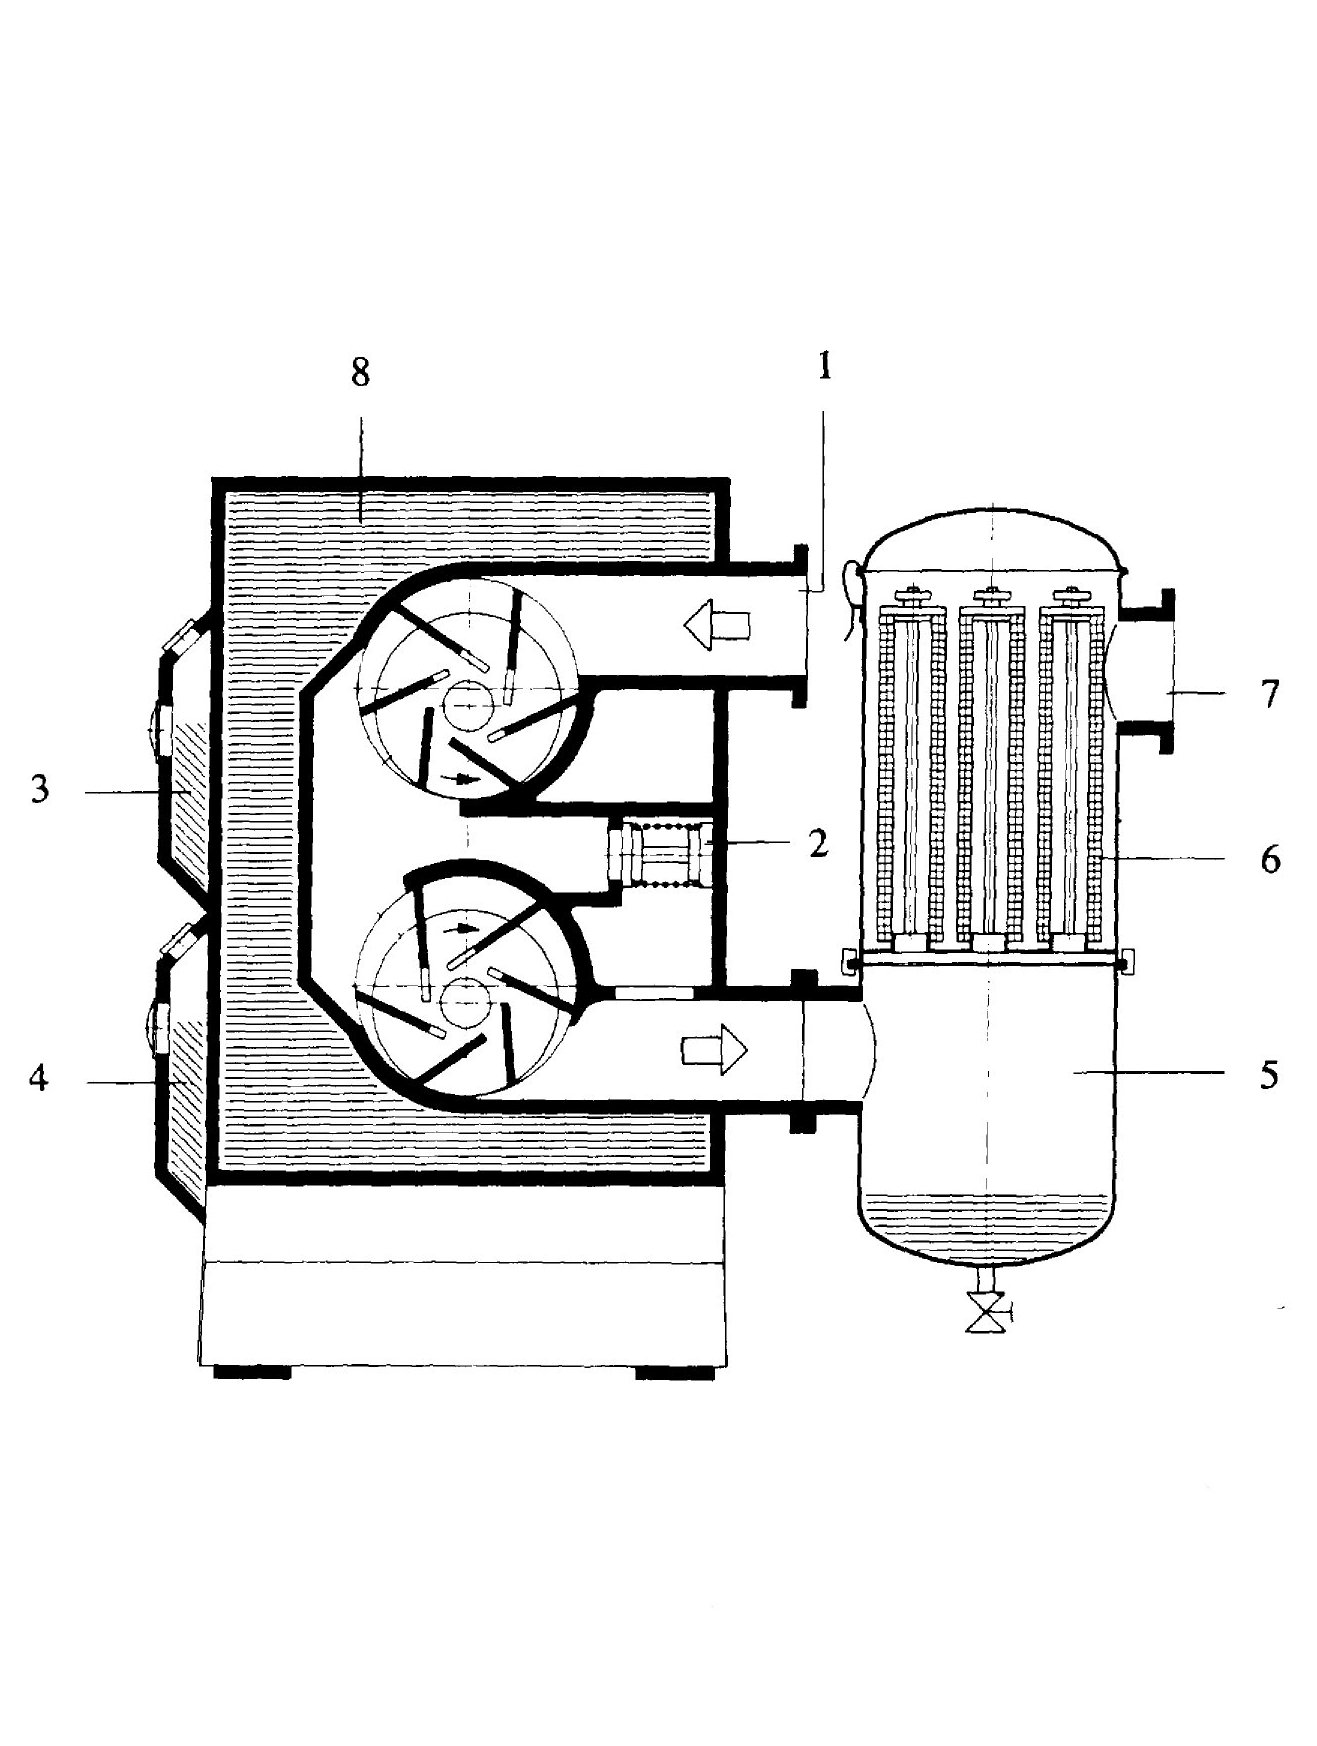 Vacuum pumps and pumping systems - Cross section of a water-cooled two-stage oil-sealed multivane pump